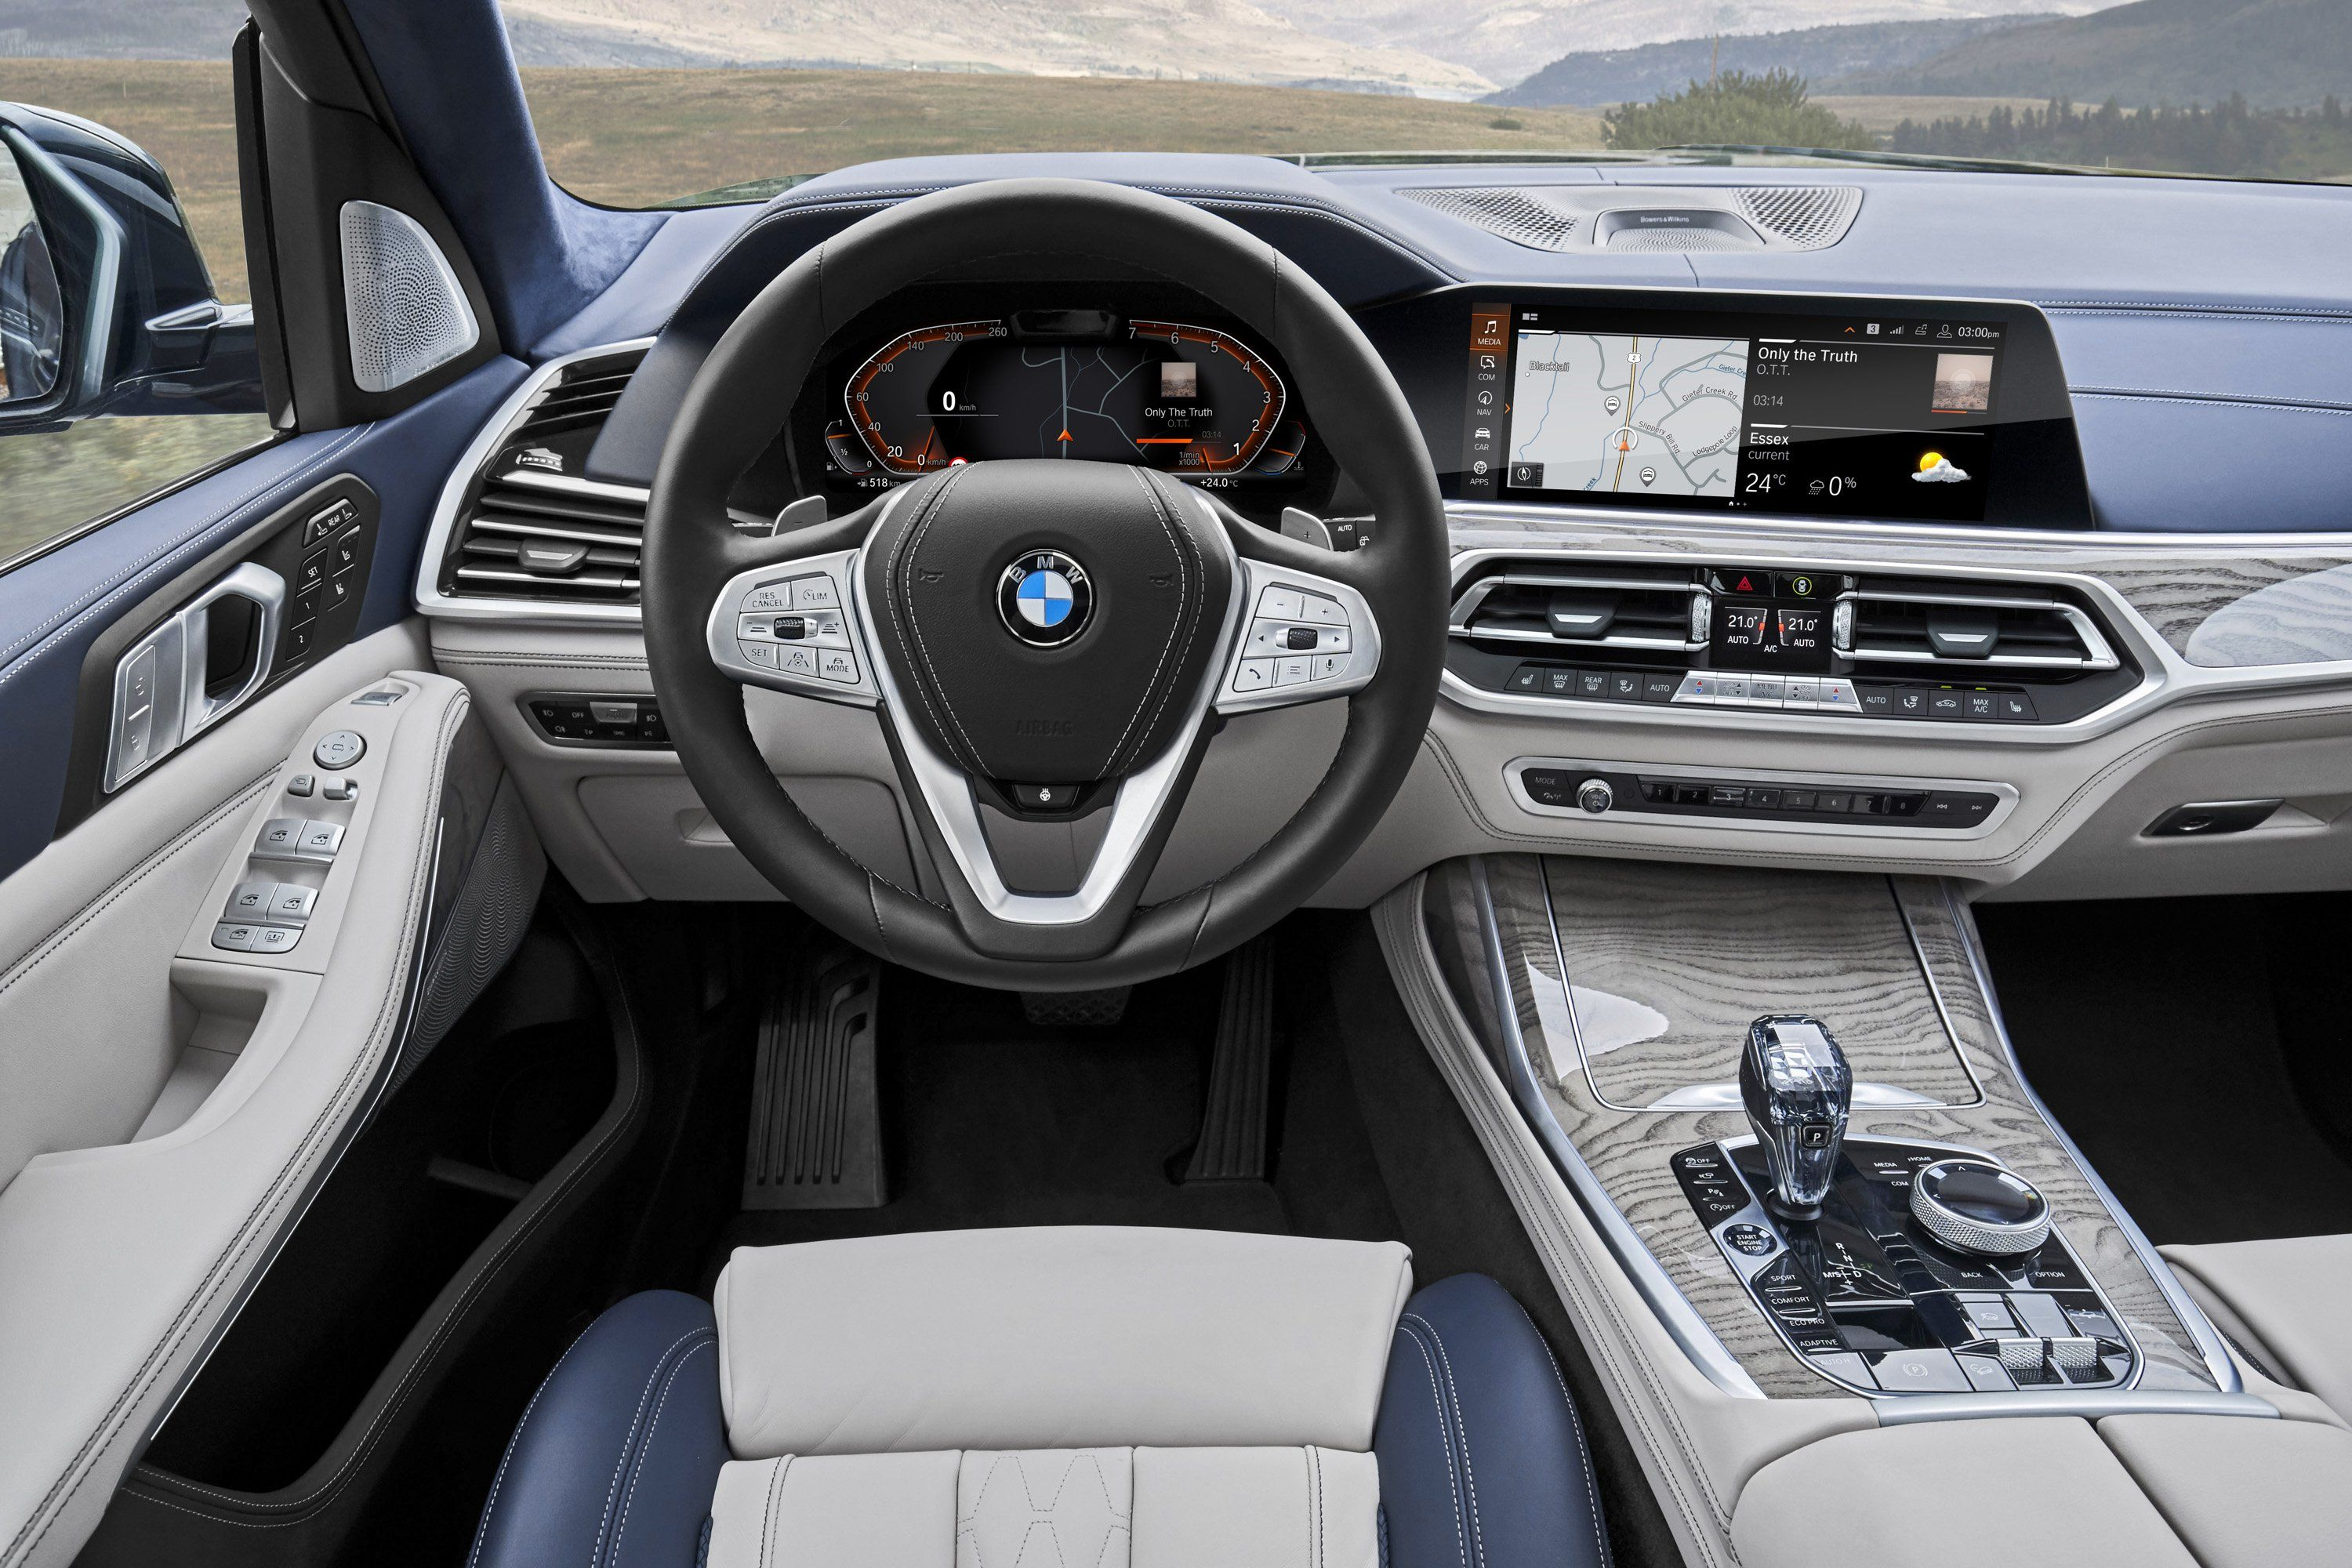 2020 Bmw X7 Cakhd Cakhd Cars